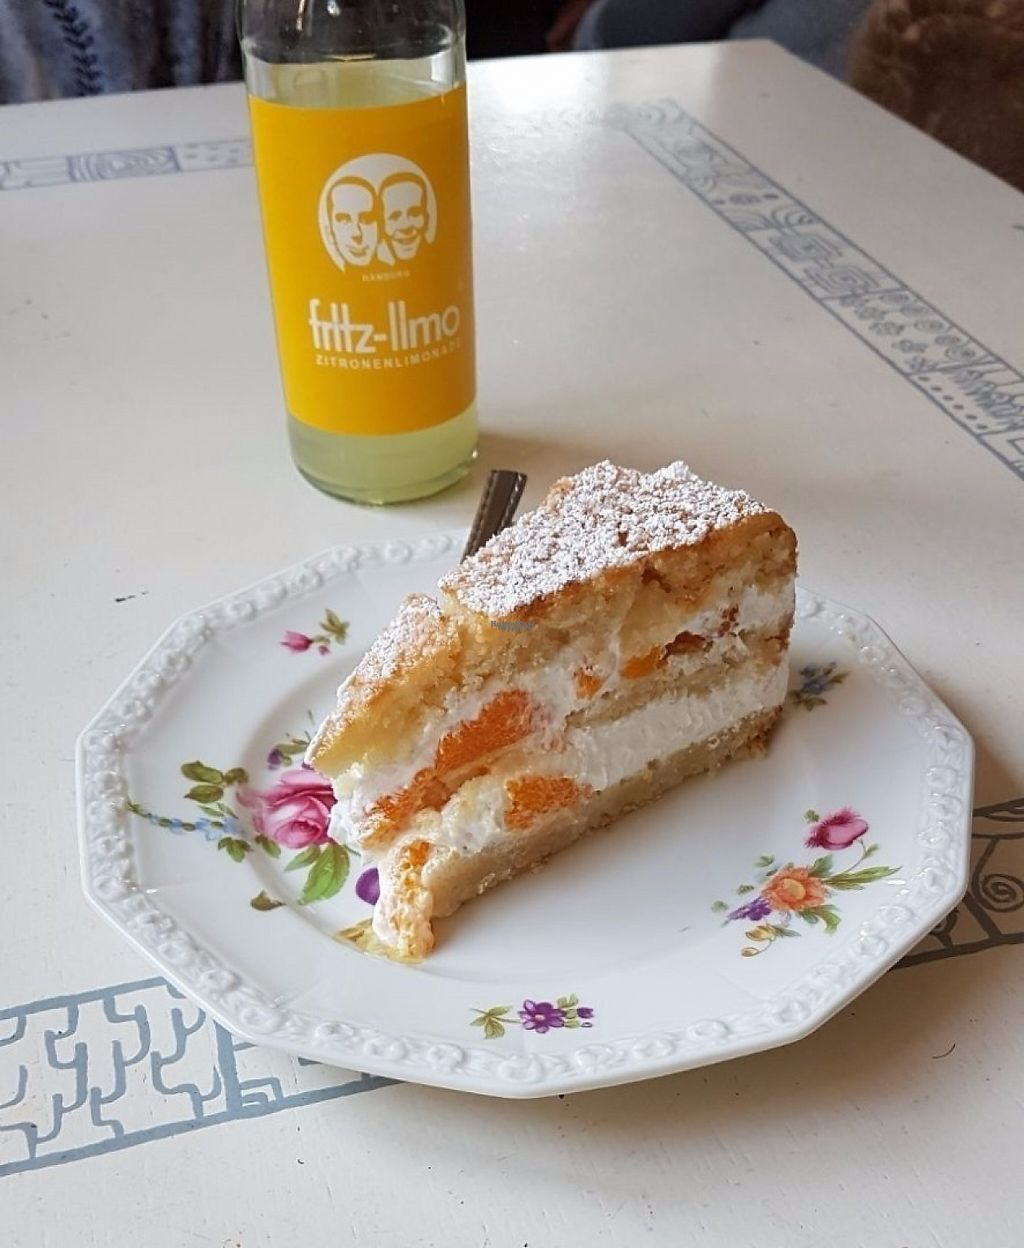 "Photo of Kruemelkueche  by <a href=""/members/profile/mon1que"">mon1que</a> <br/>Yummy vegan tangerine cake <br/> March 27, 2017  - <a href='/contact/abuse/image/52017/241689'>Report</a>"